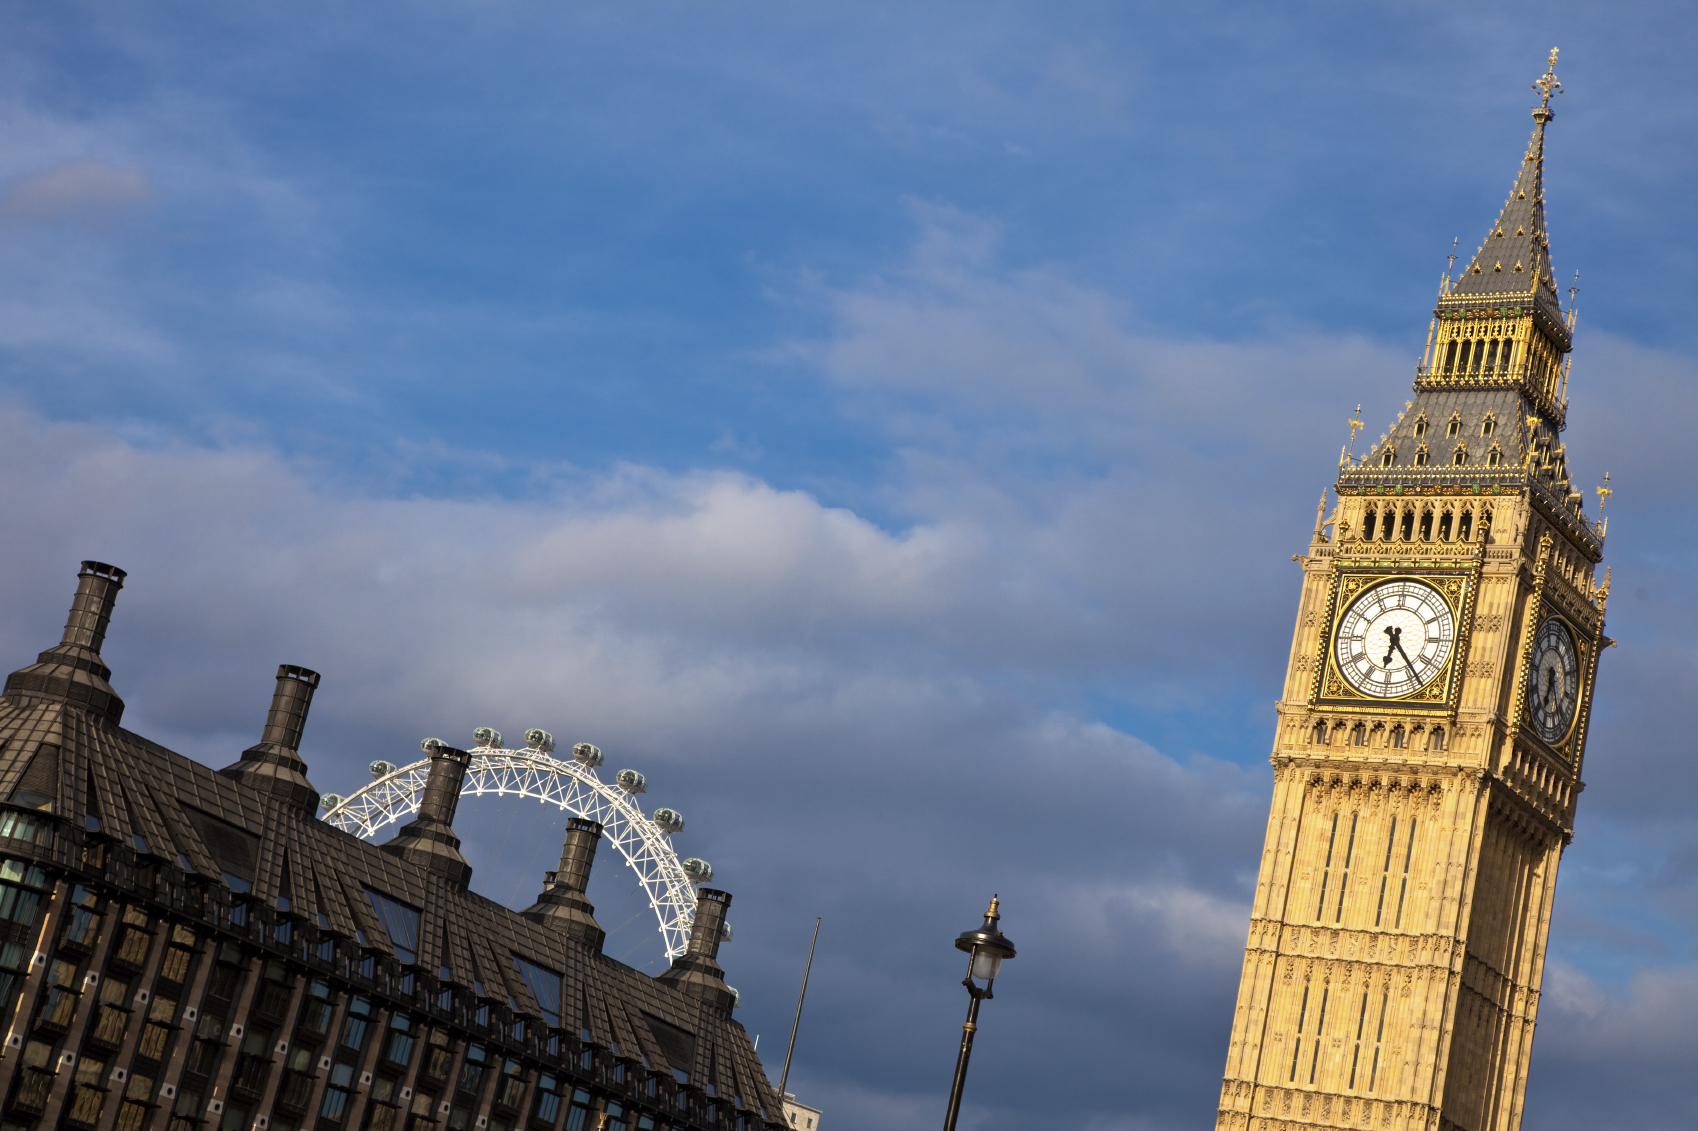 Old and new: the London Eye and Big Ben's Tower